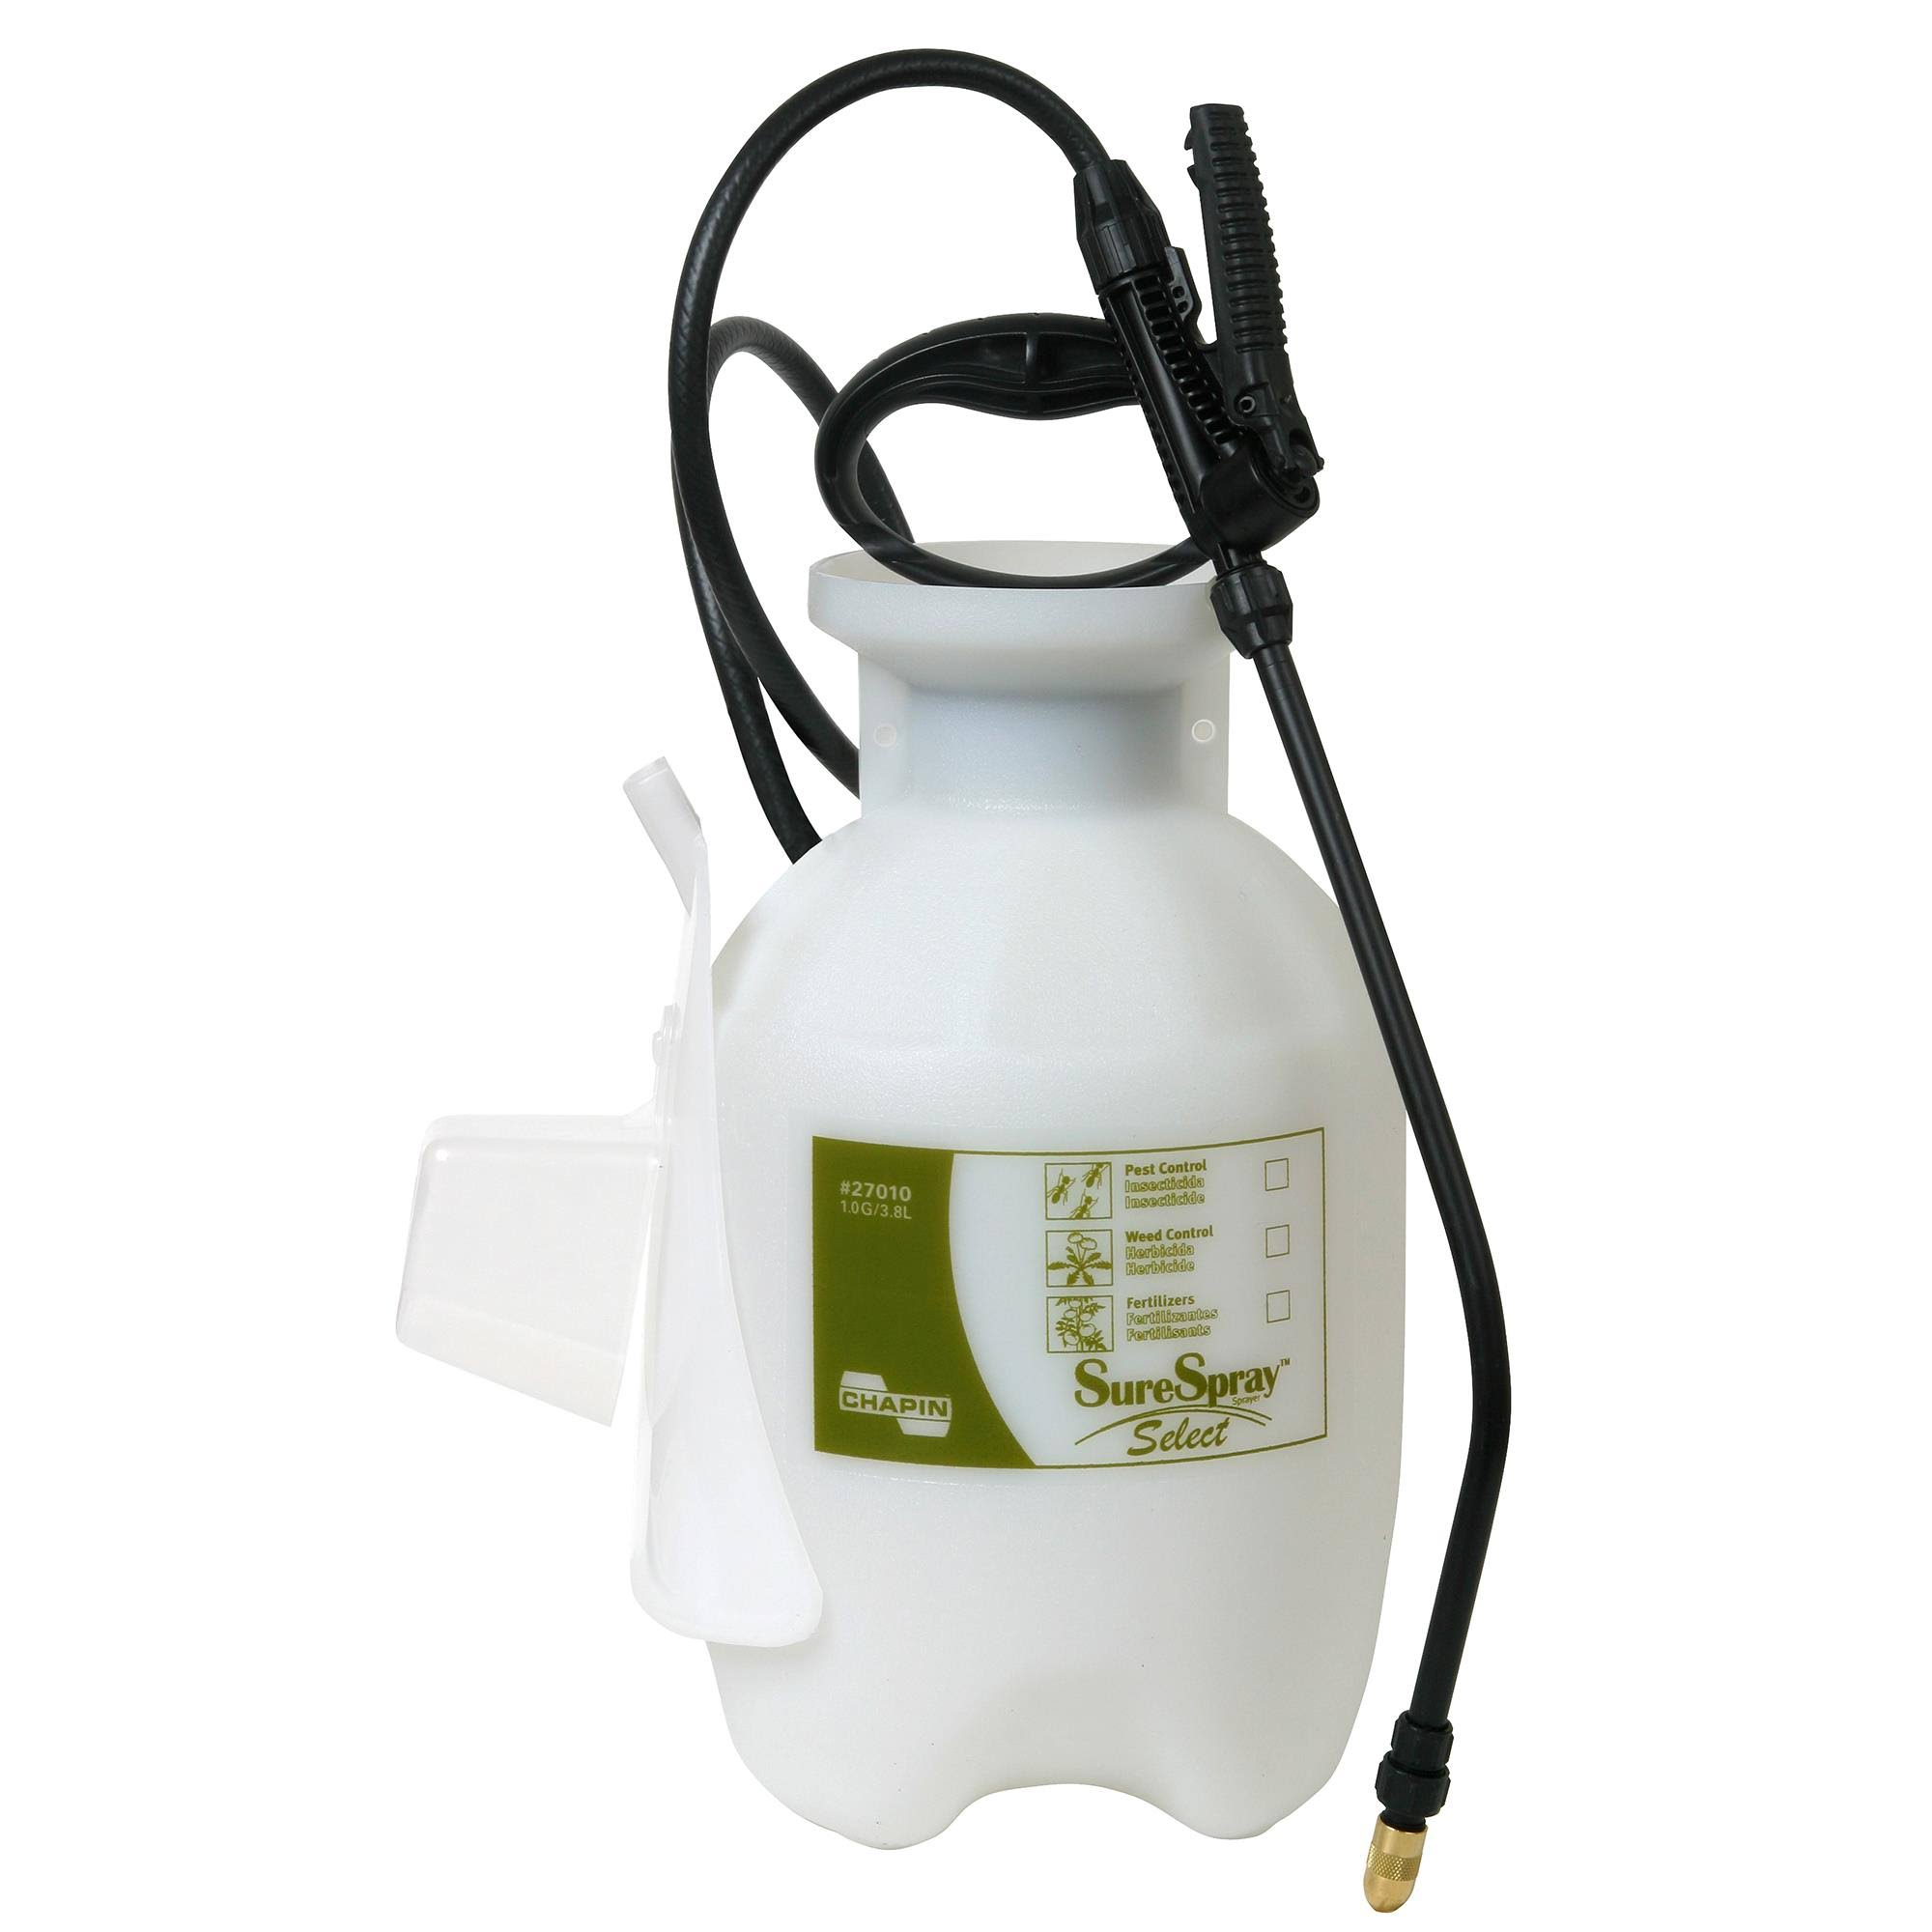 Chapin Sprayers 27010 SEL SureSpray Select Sprayer - 1 Gallon